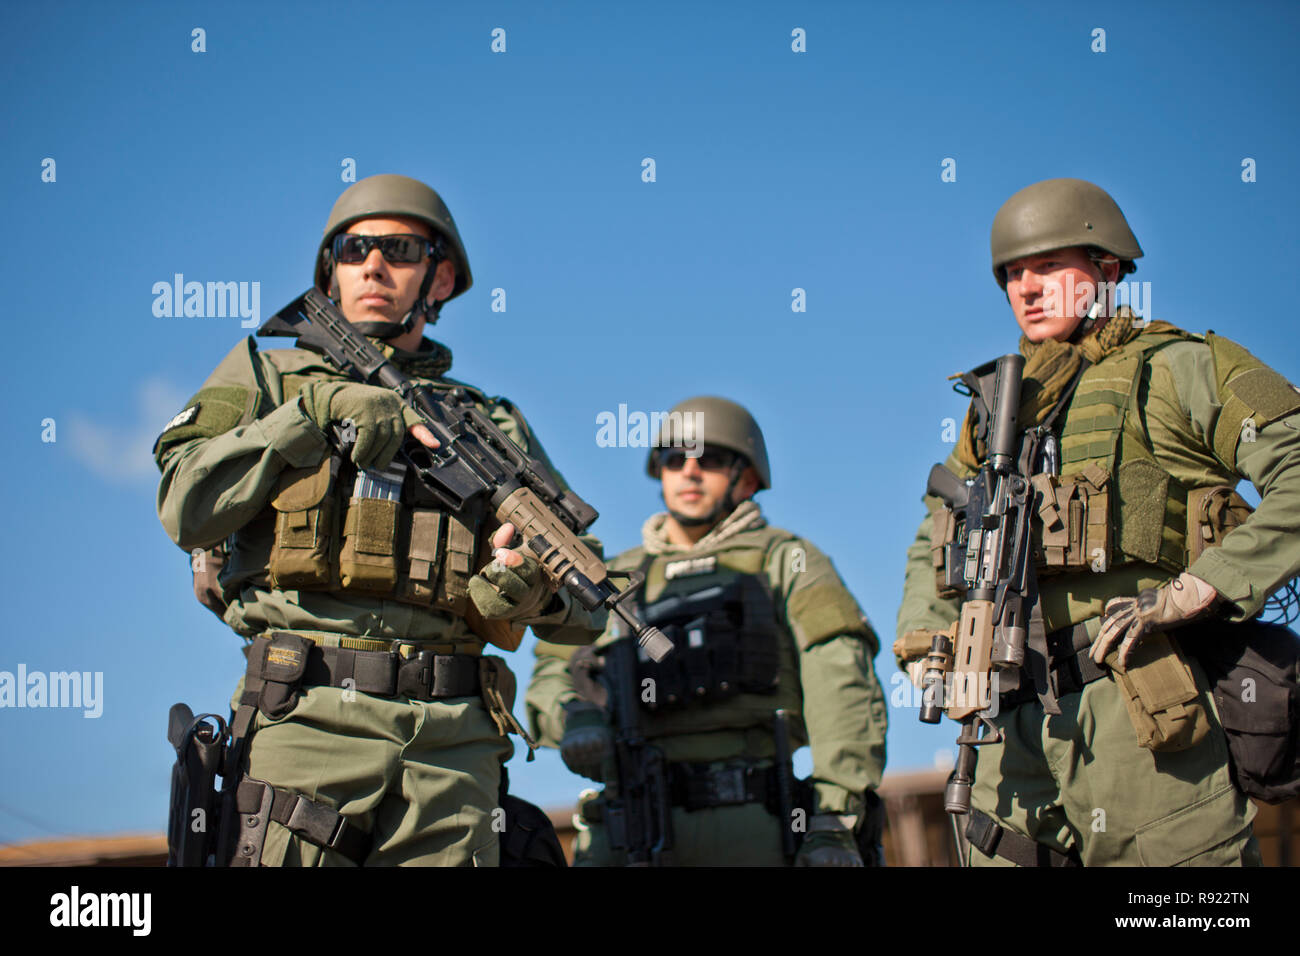 Three police officers at a training facility. - Stock Image